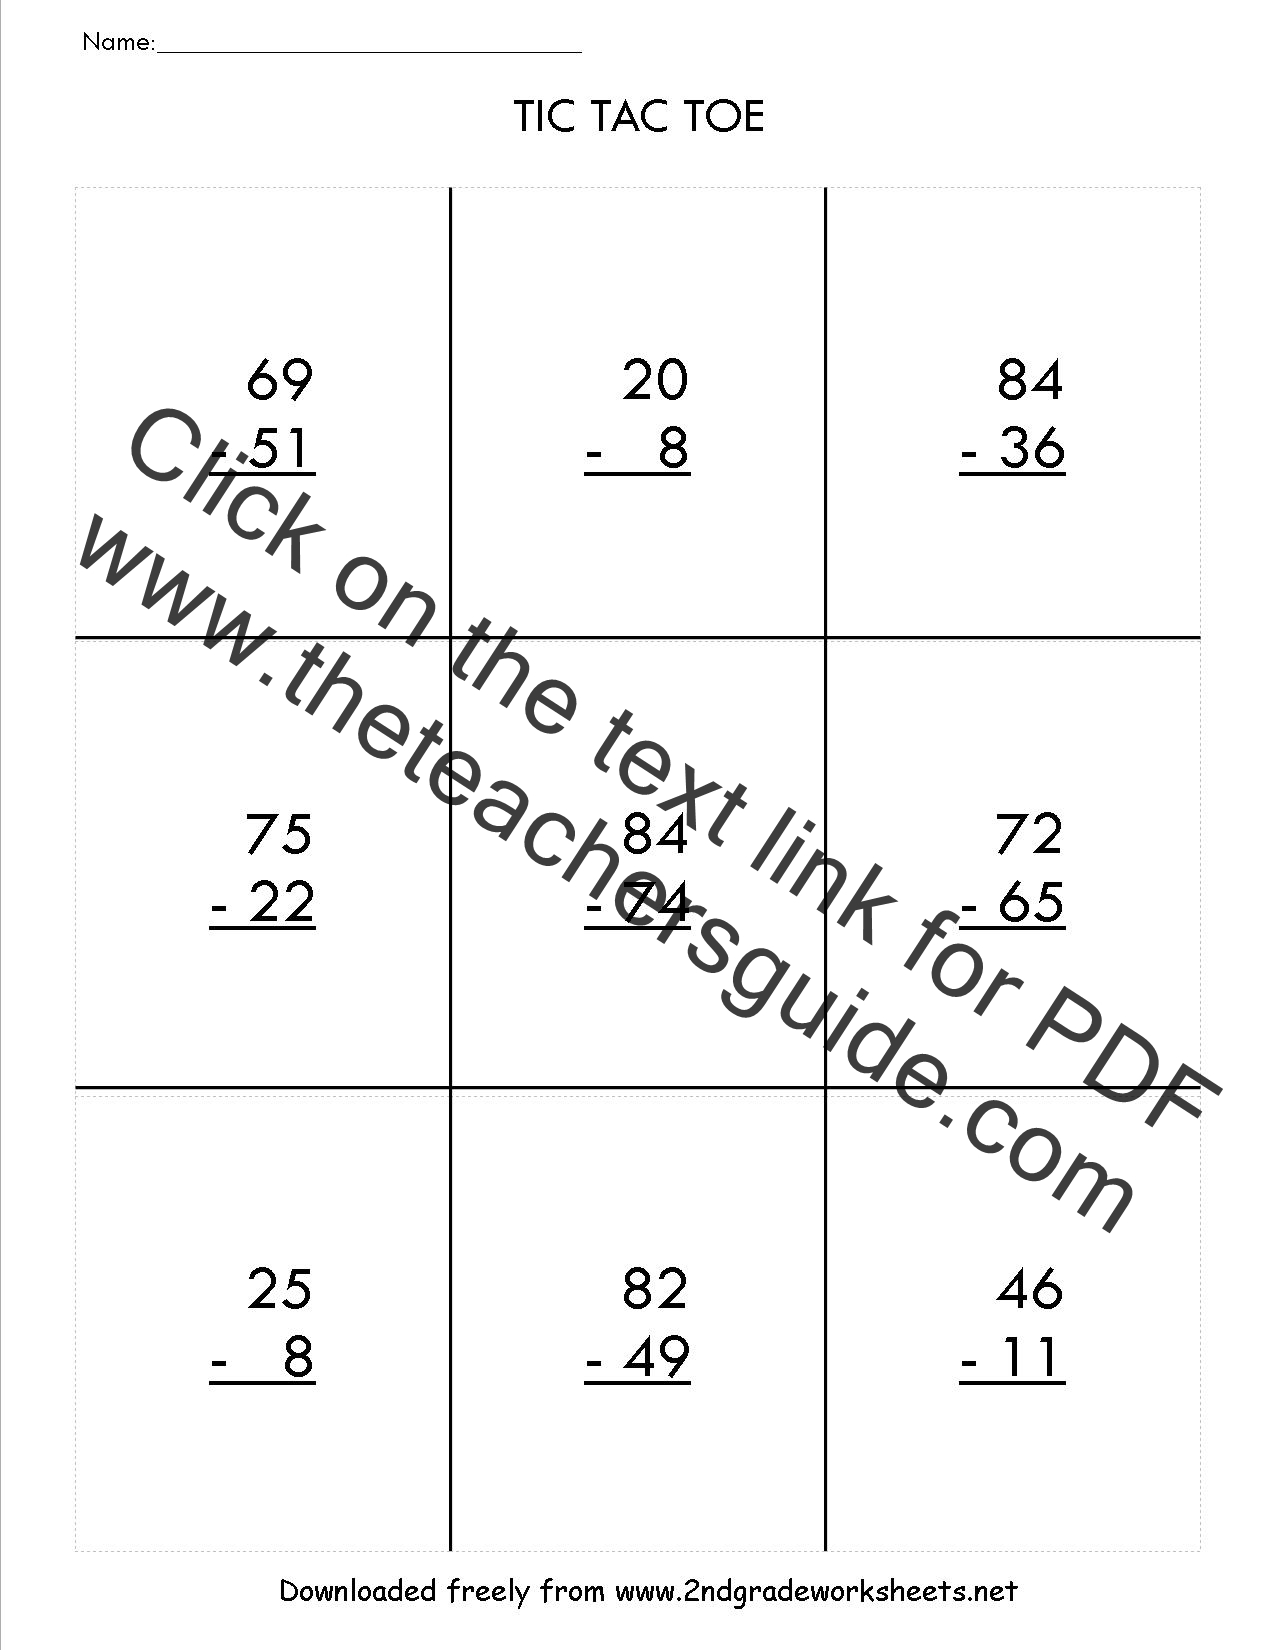 Two Digit Subtraction Worksheets – Subtracting Three Digit Numbers with Regrouping Worksheets